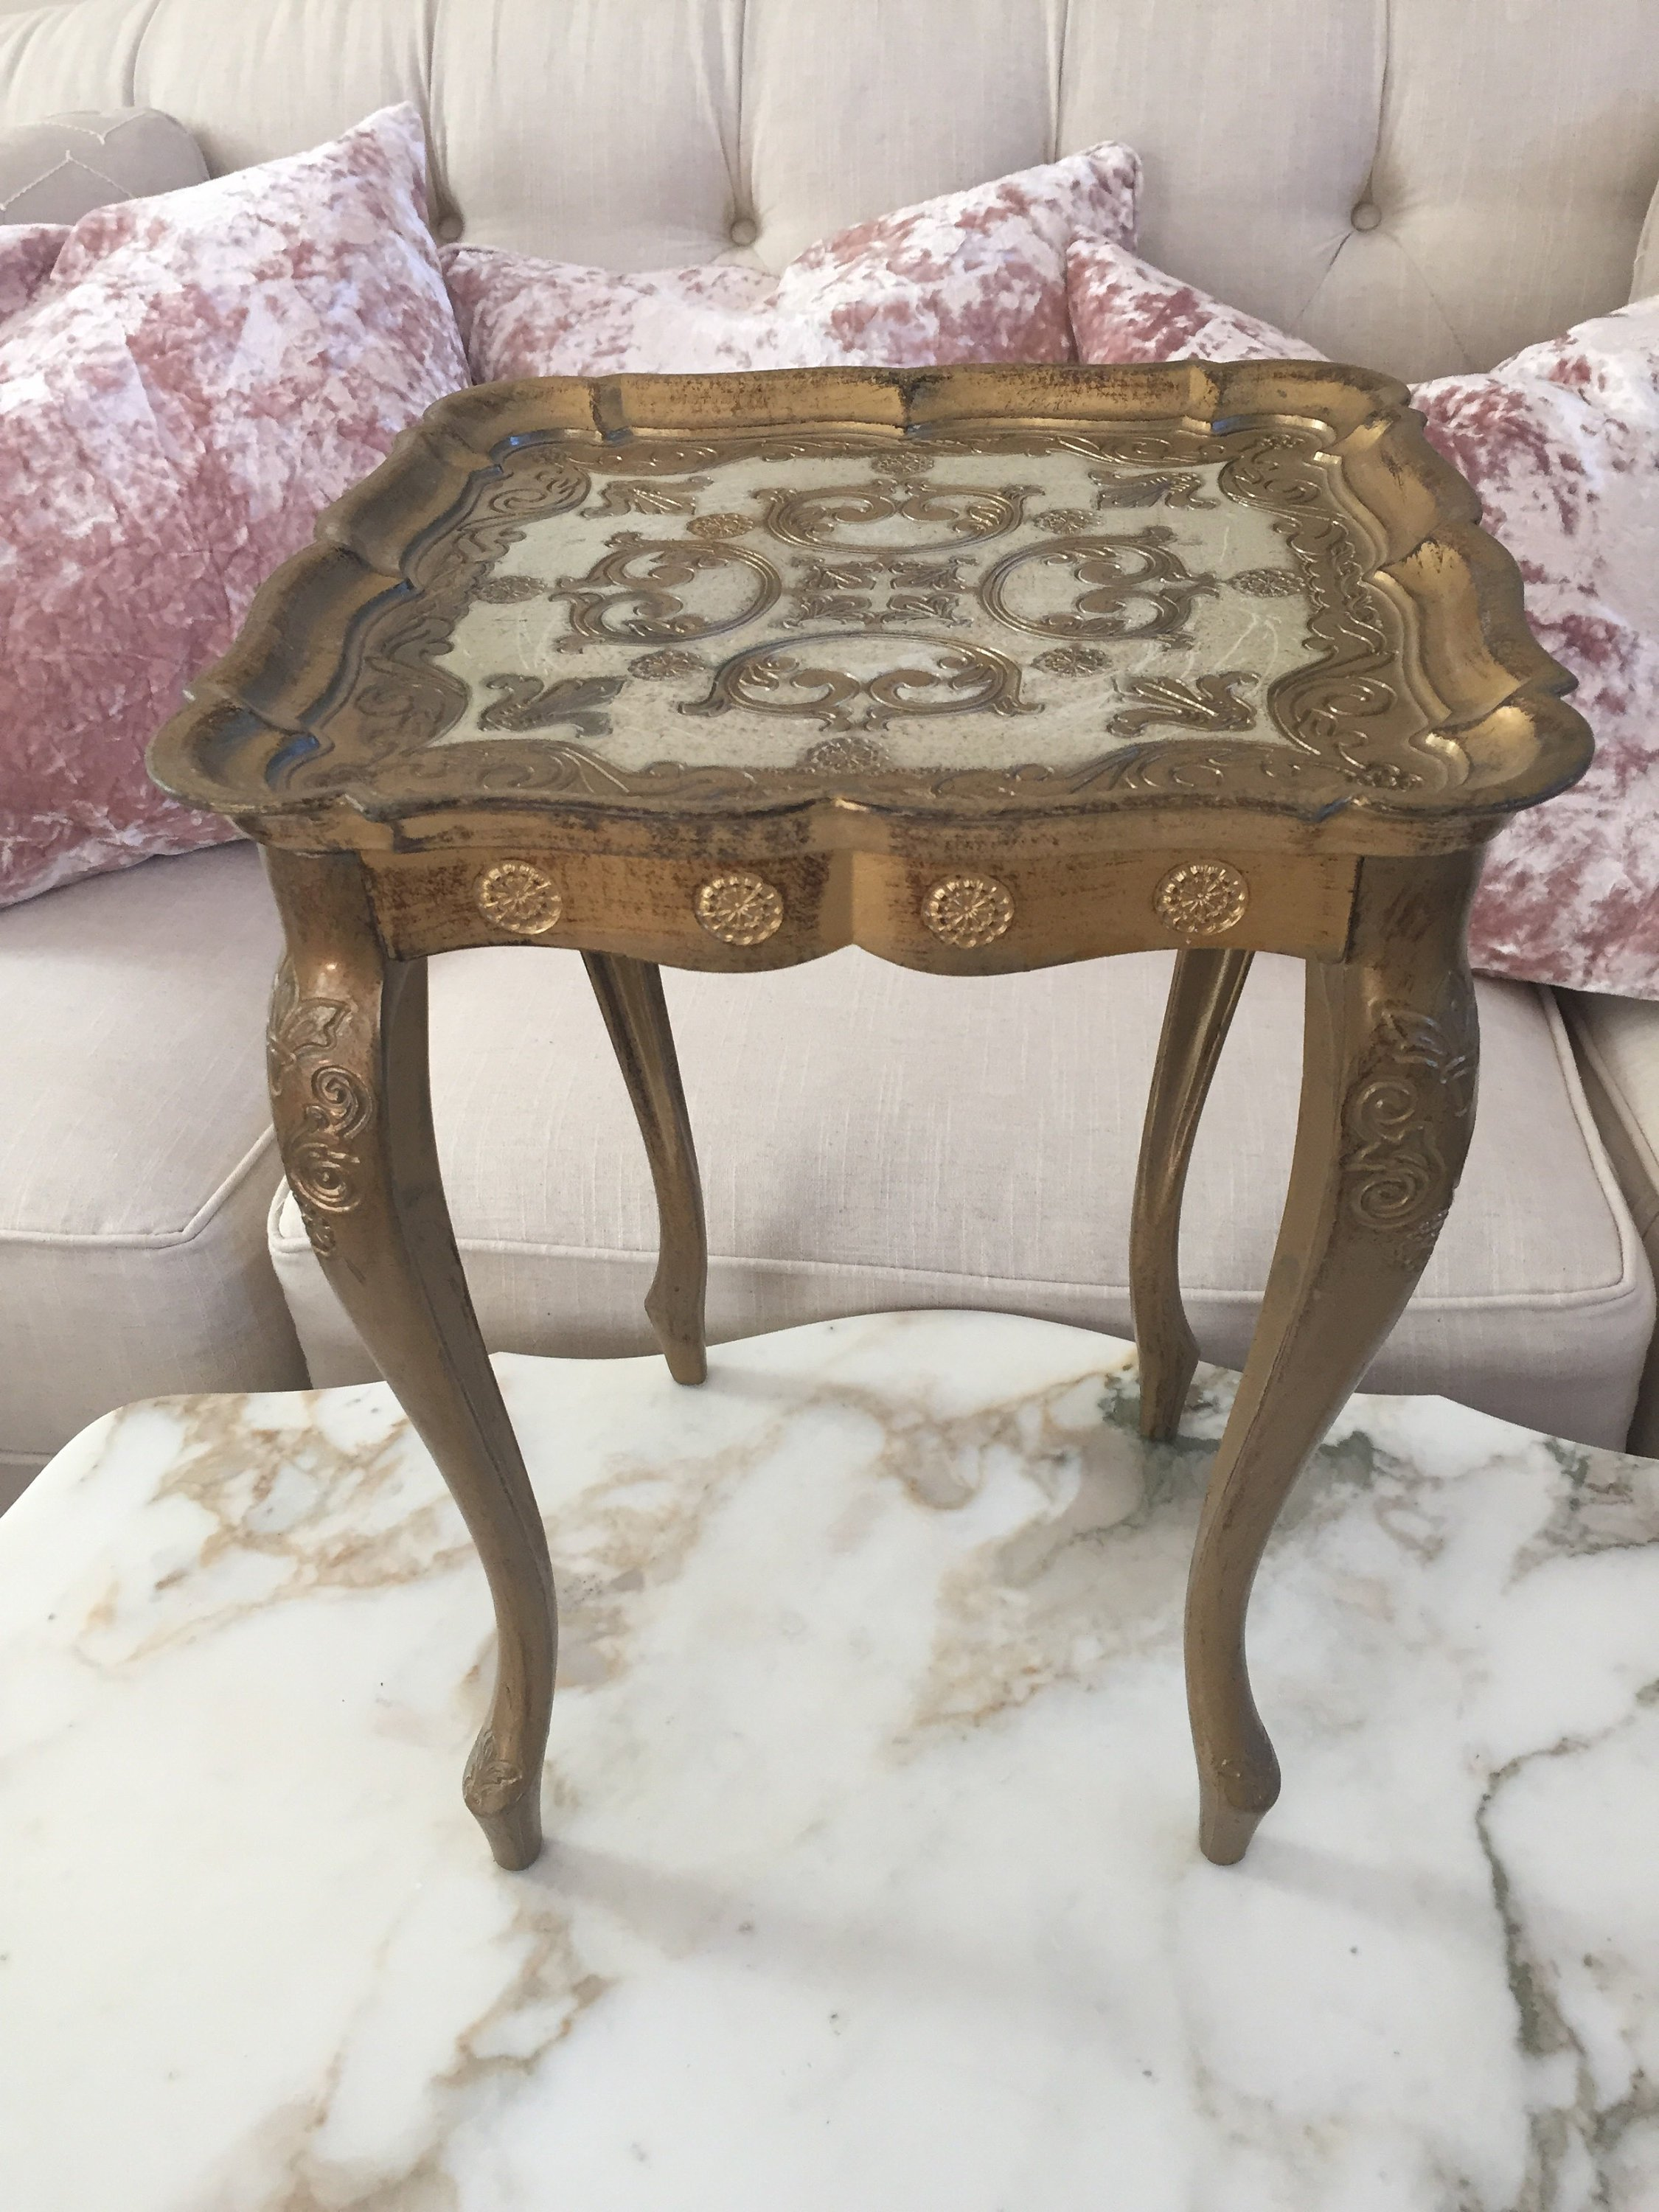 Etsy - Small Italian Florentine Plastic Table Golden Side End Accent